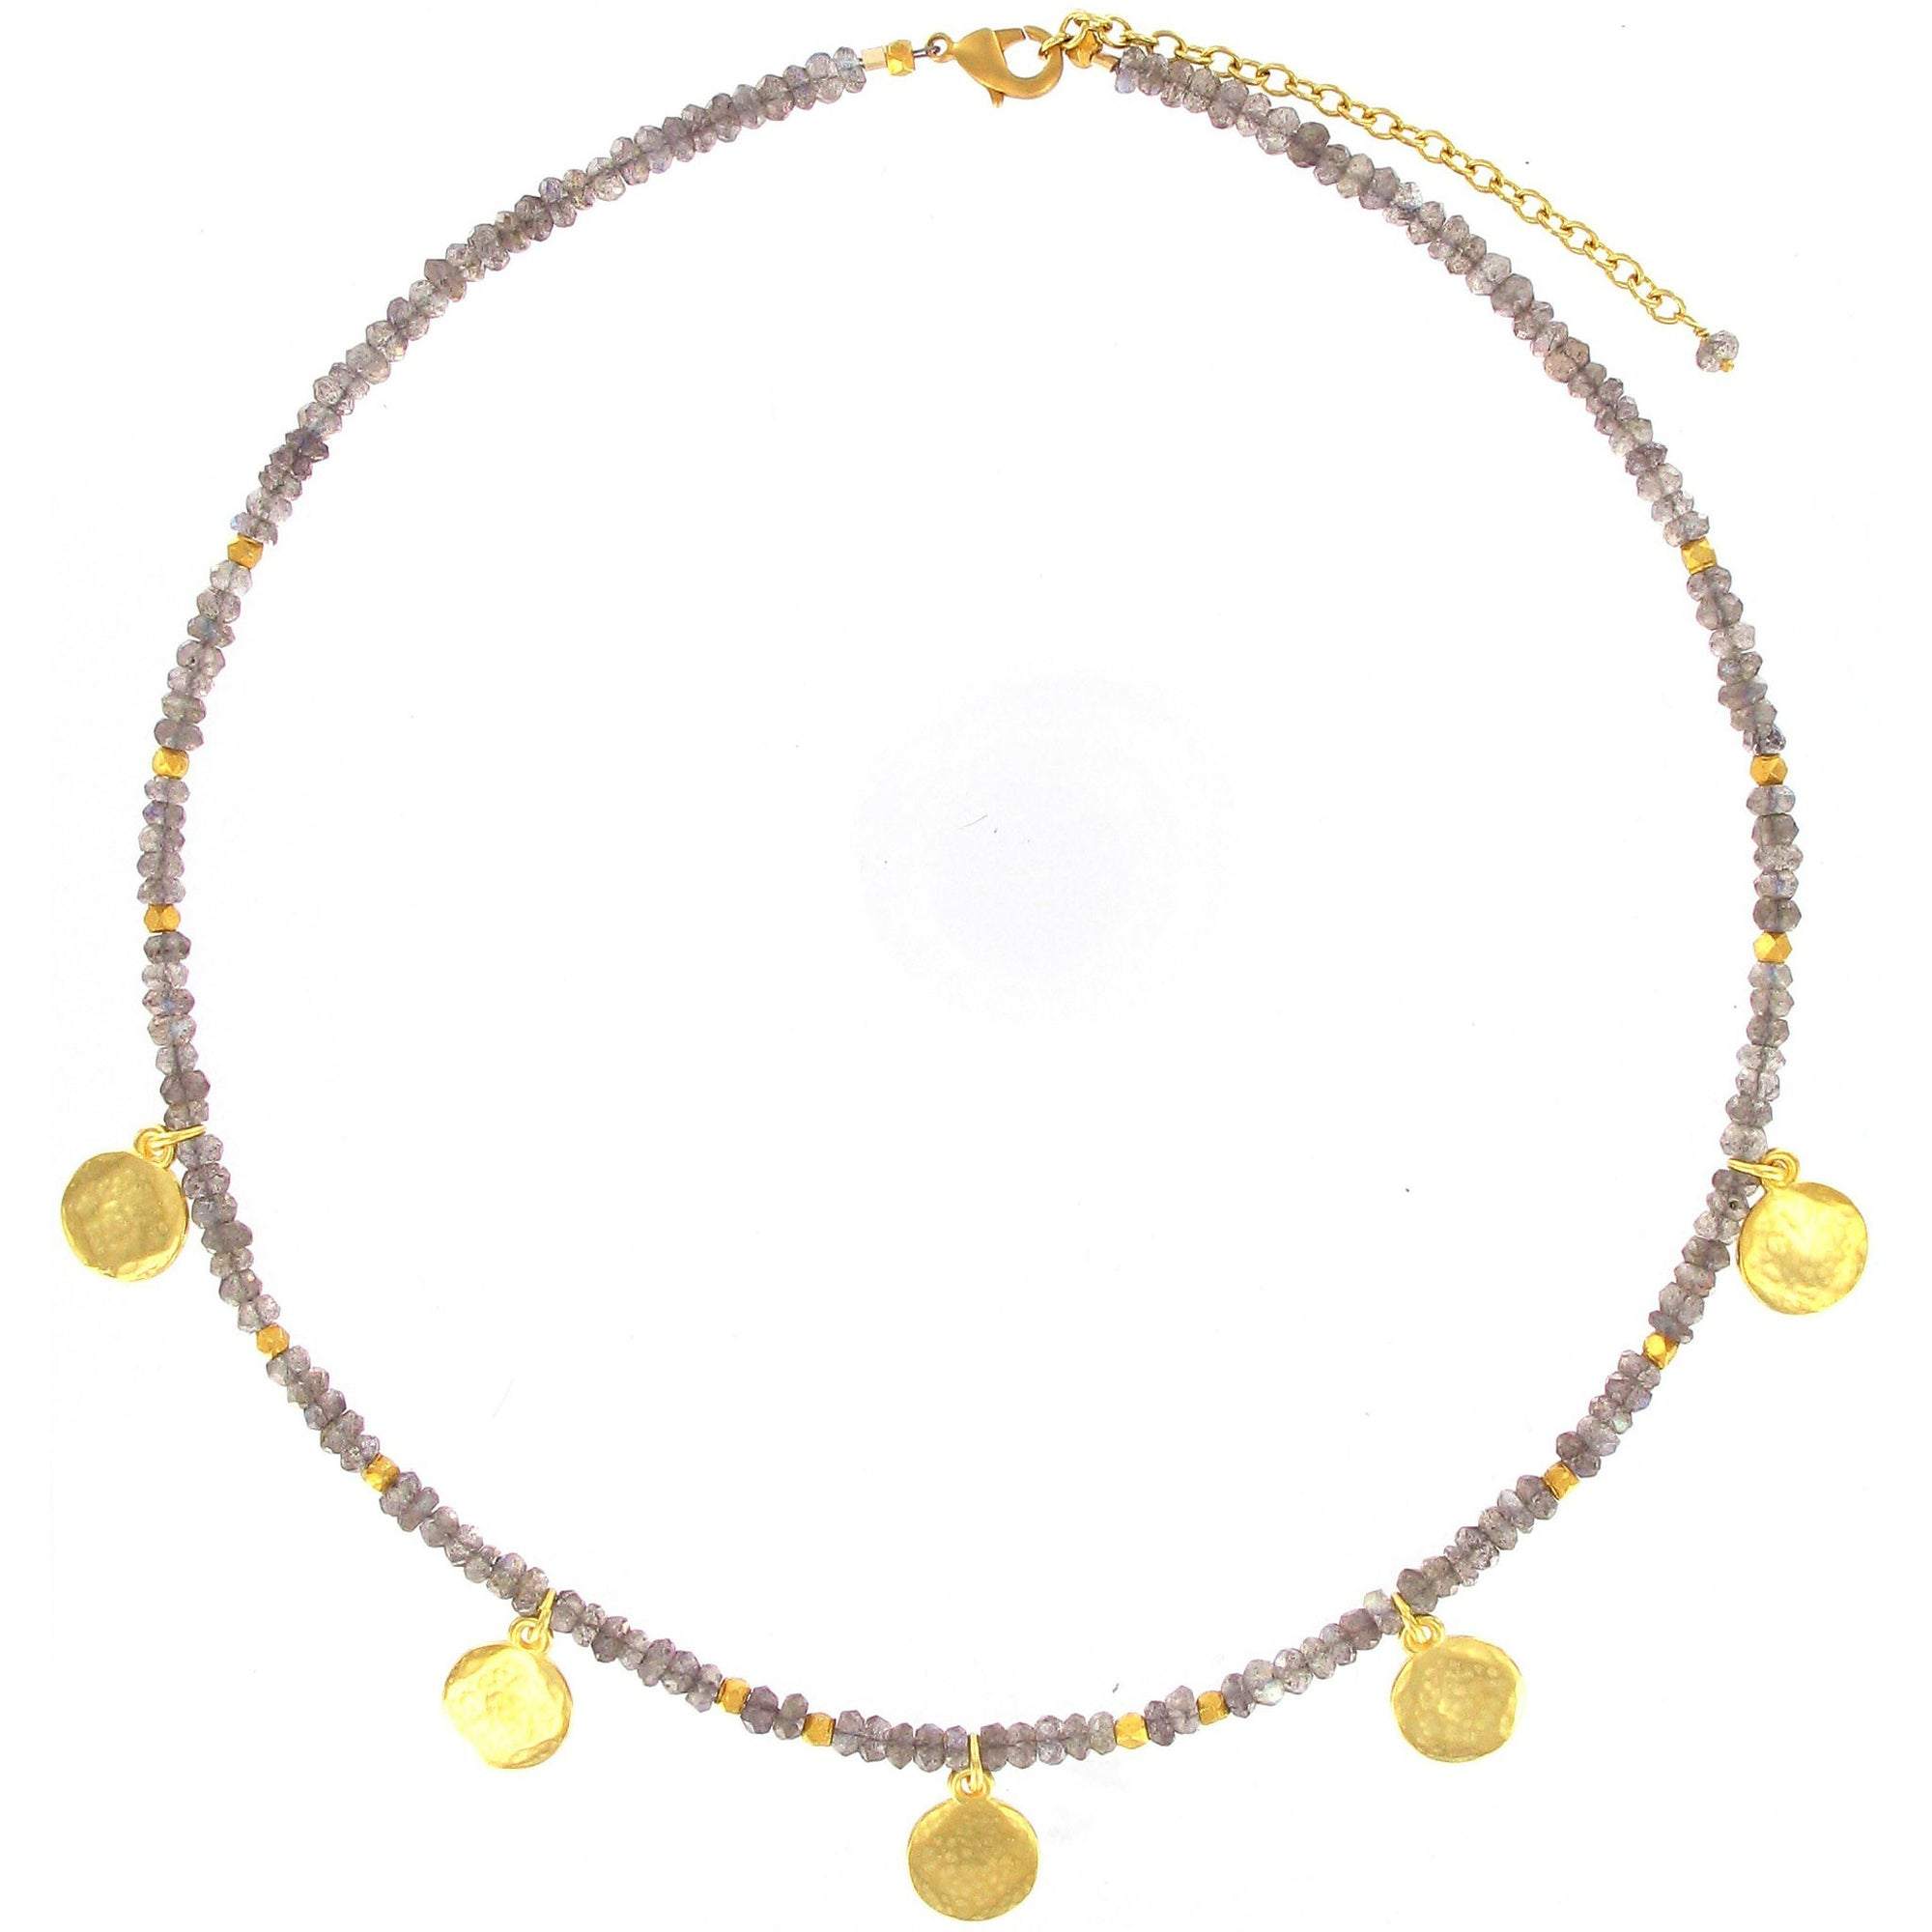 earth precious semi products stones and jewellery lariat chalcedony with necklace stone